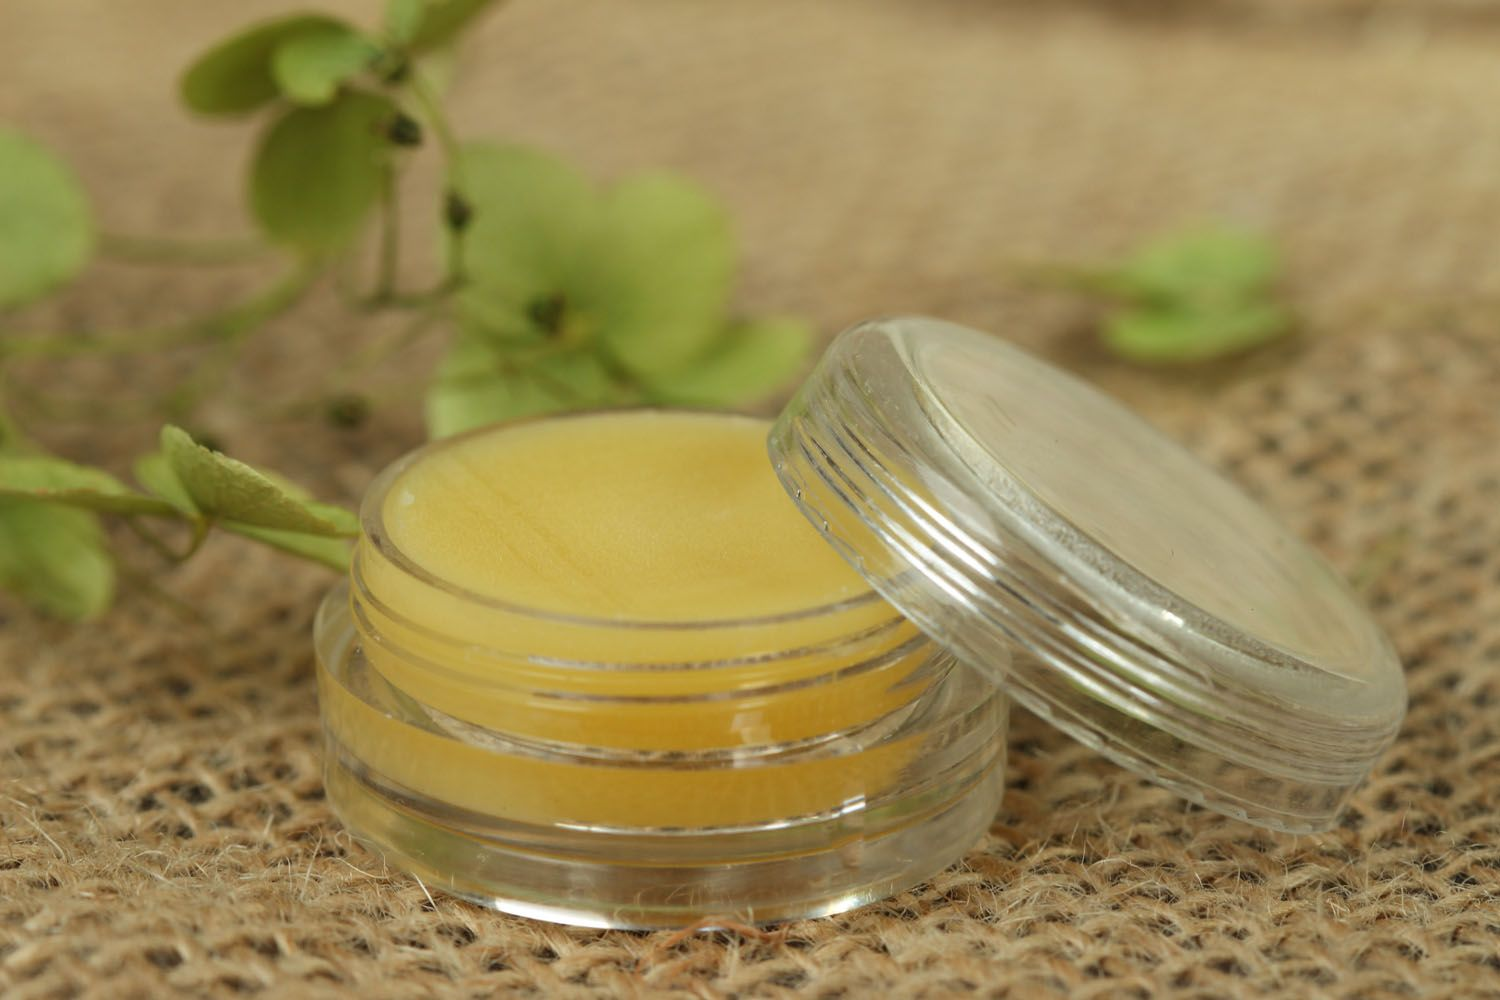 Solid floral perfume photo 2